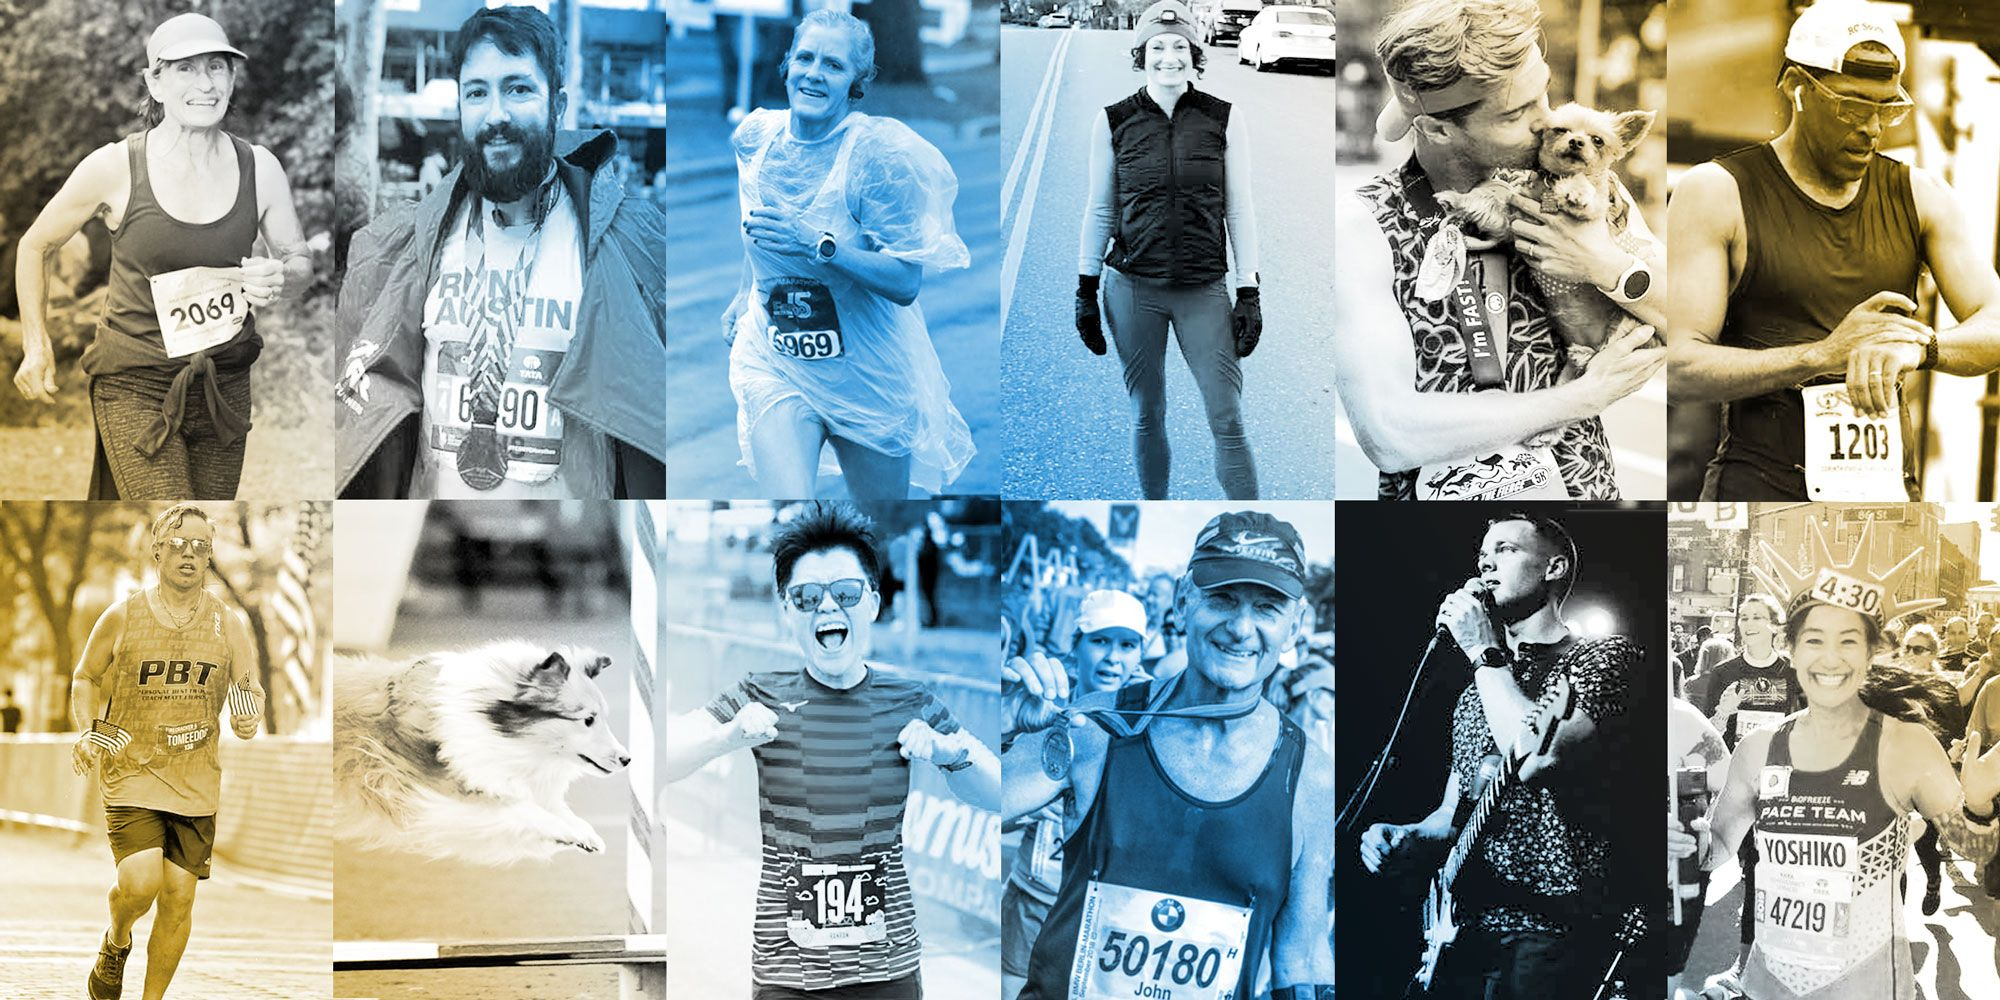 From an American Idol Runner-Up to a 100-Pound Weight Loss Transformation, Meet 12 Amazing Runner's World+ Members